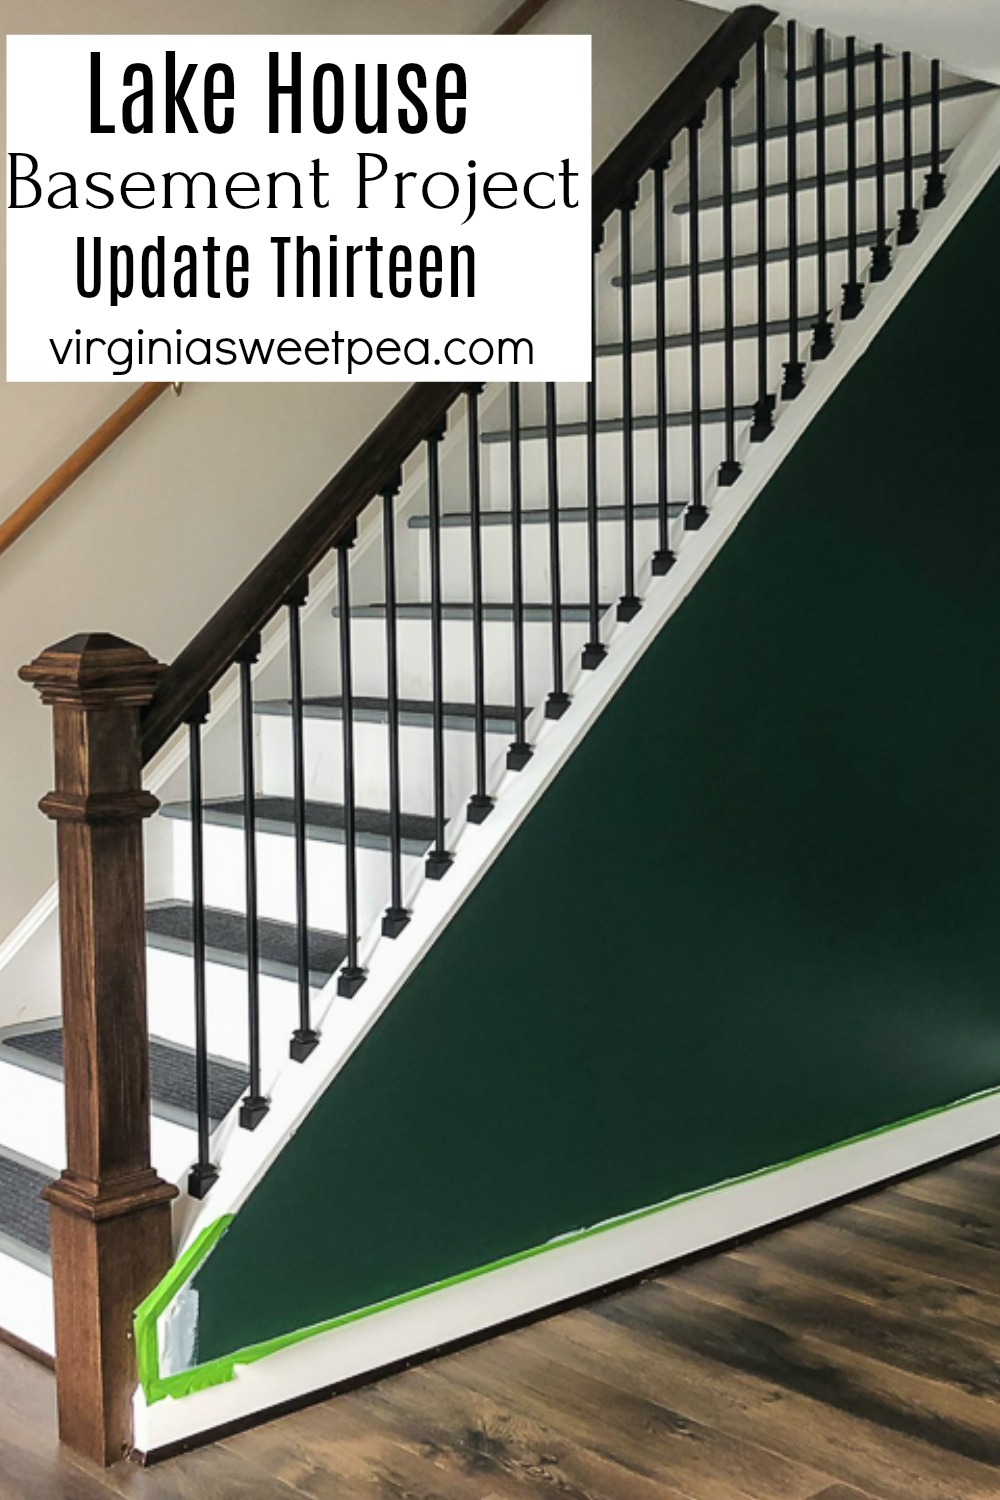 Lake House Basement Project - Update Thirteen - See how metal balusters were installed on a staircase and the other projects tackled as an unfinished basement is transformed into a family room, bathroom, and bedroom. #howtoinstallbalusters #lakehousebasement #finishingabasement #smithmountainlake via @spaula